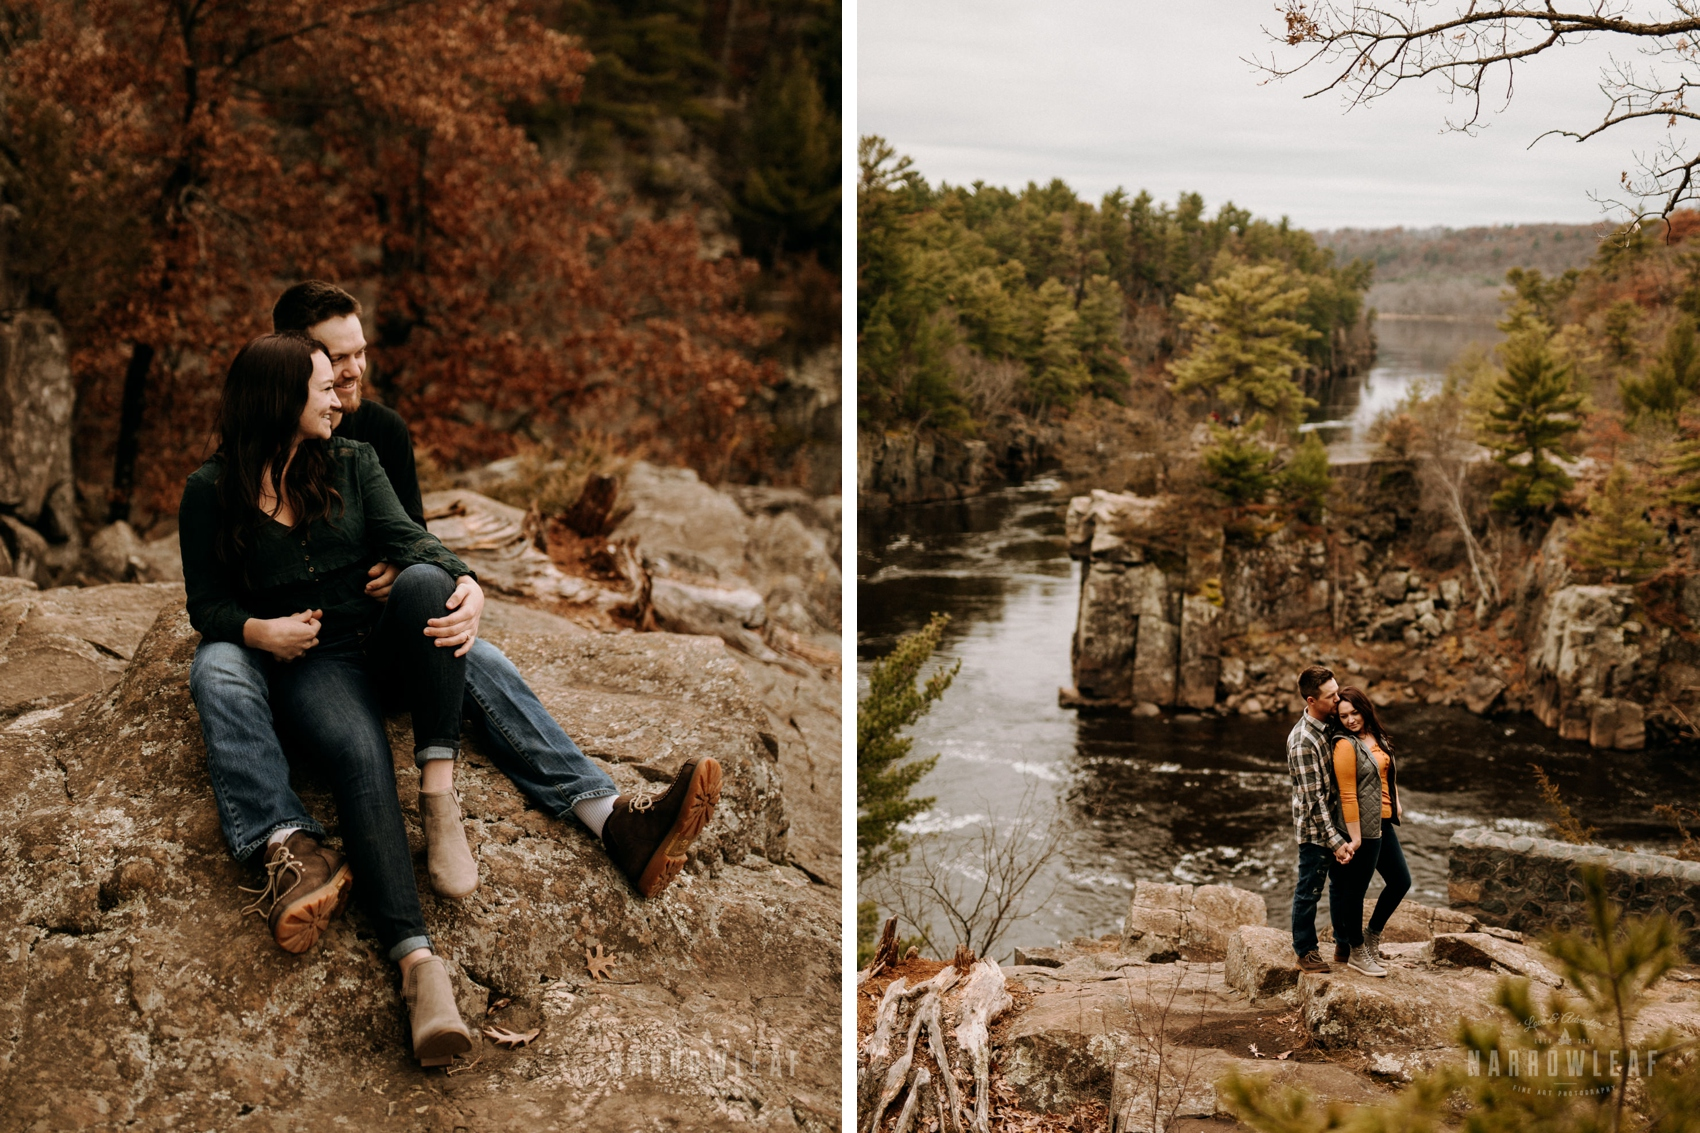 fun-engagement-photographer-in-wisconsin-narrowleaf-photography.jpg005-006.jpg